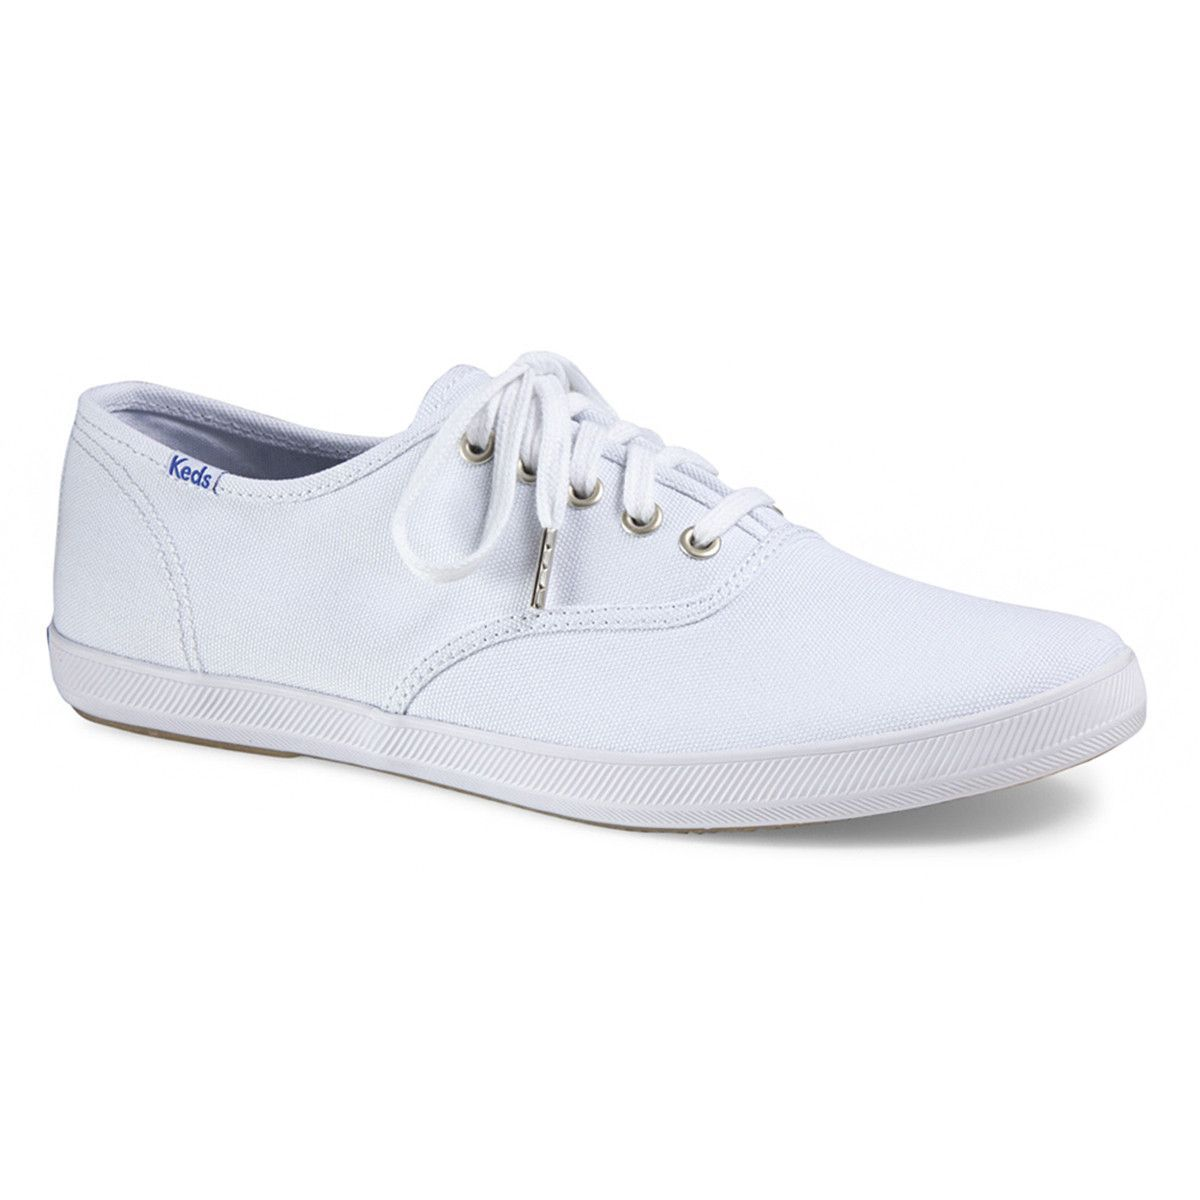 79dcbfa87ab893 Keds - Men s Champion Sneakers - White